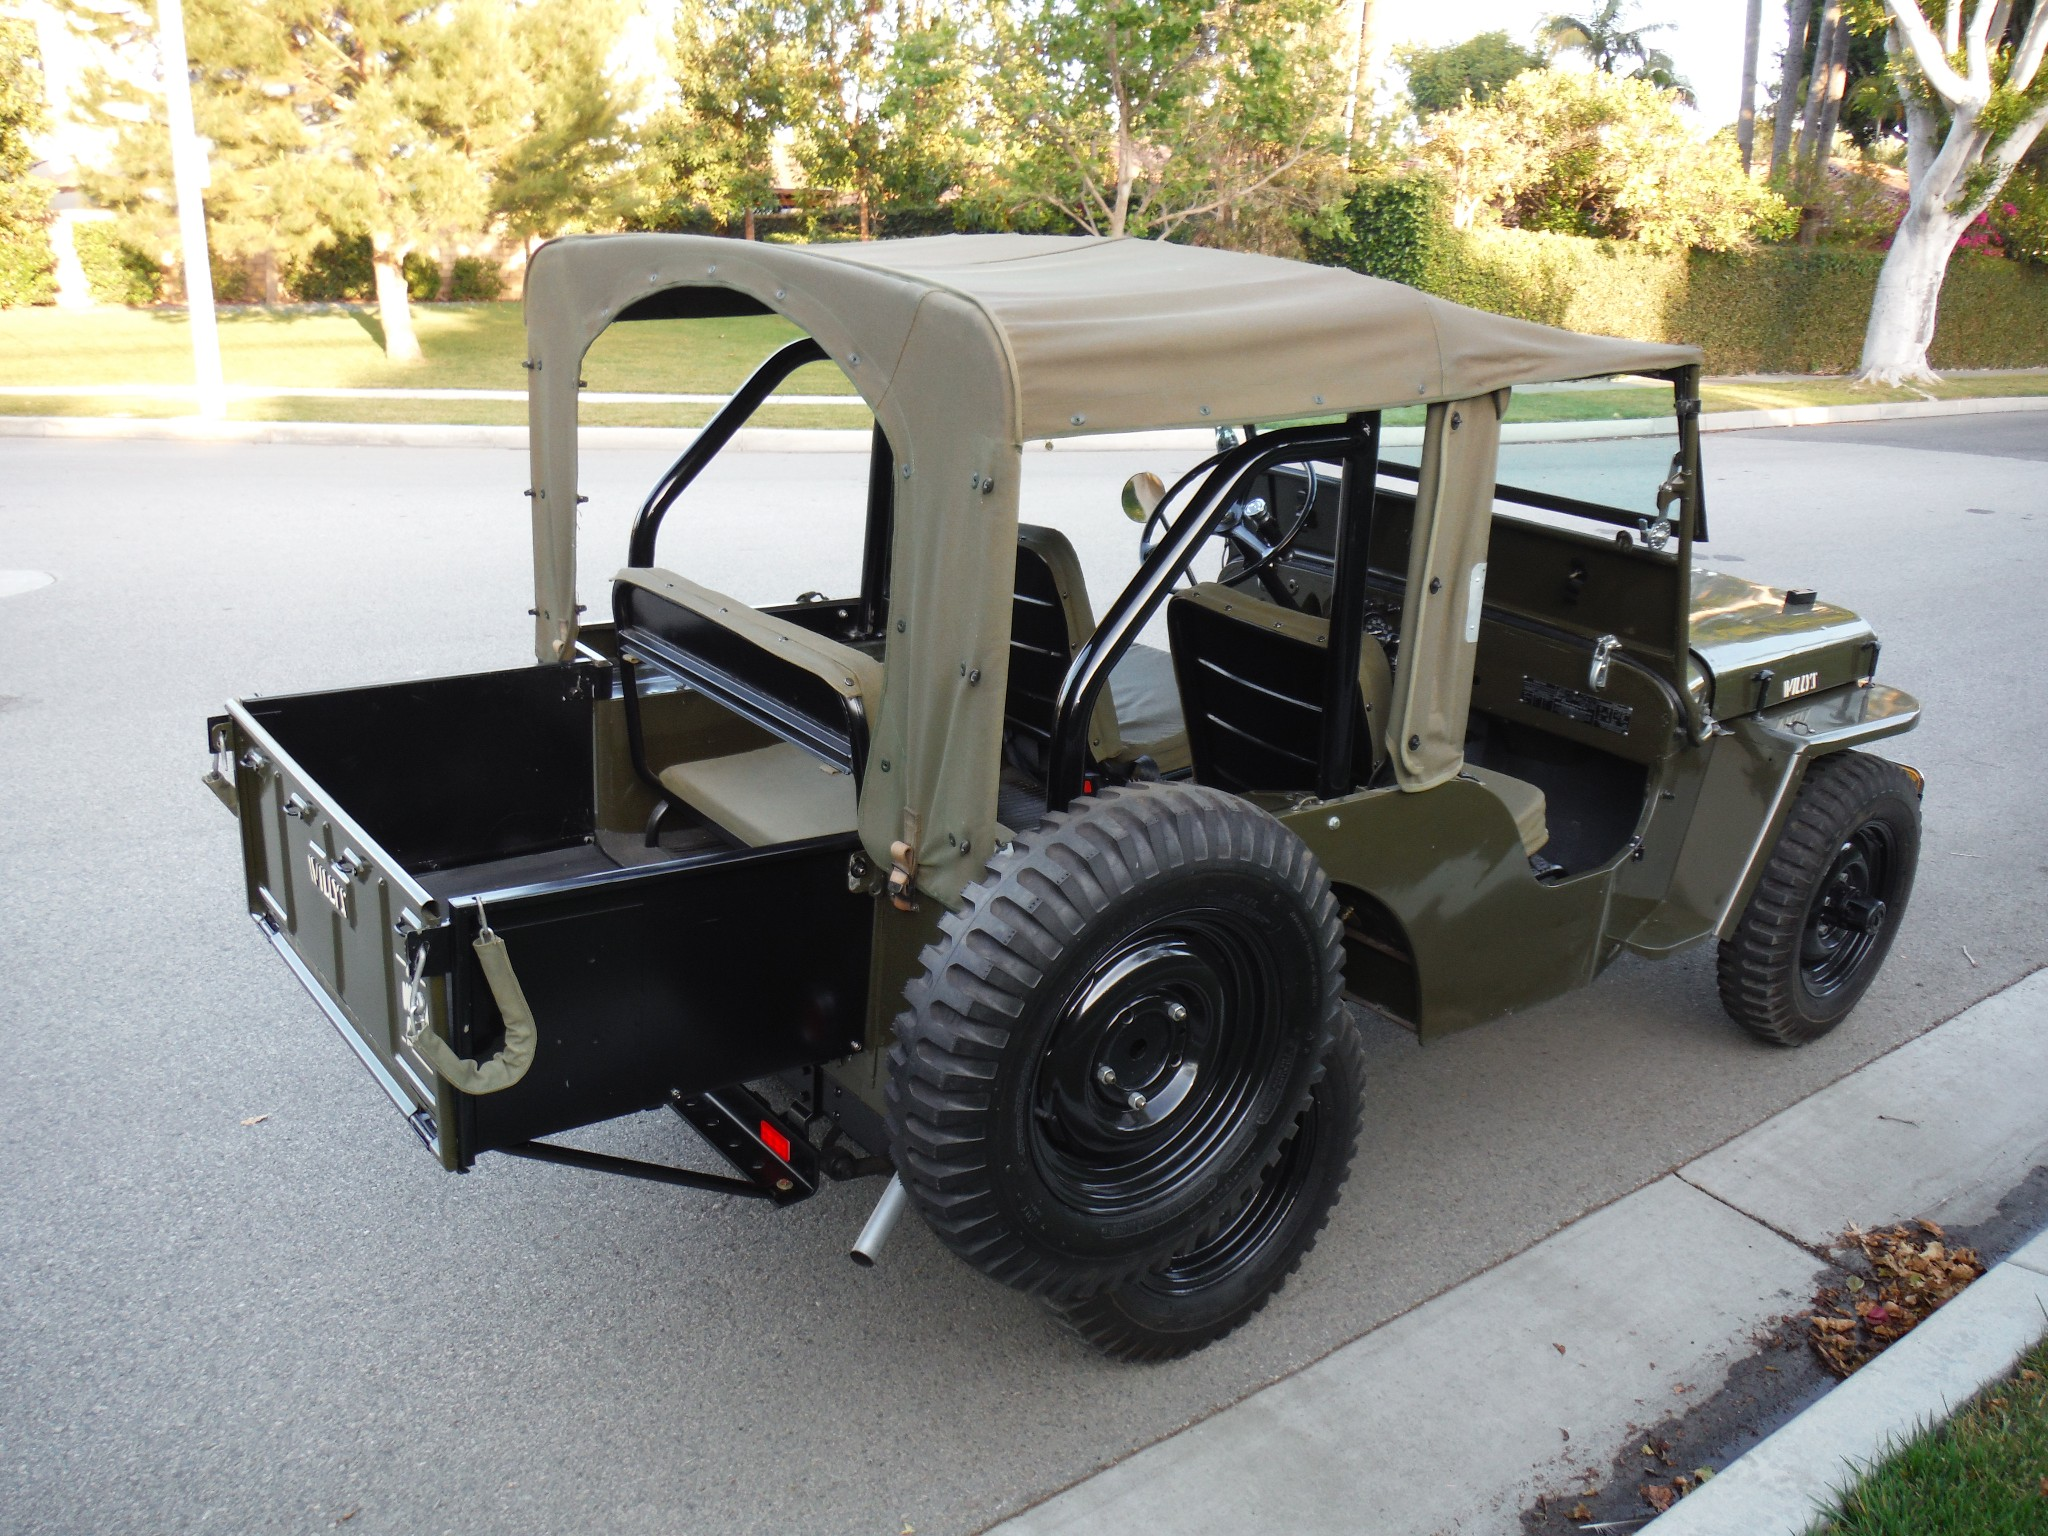 This 1947 Willys Jeep CJ2A has an attachable tray that adds pick-up style carrying capacity.